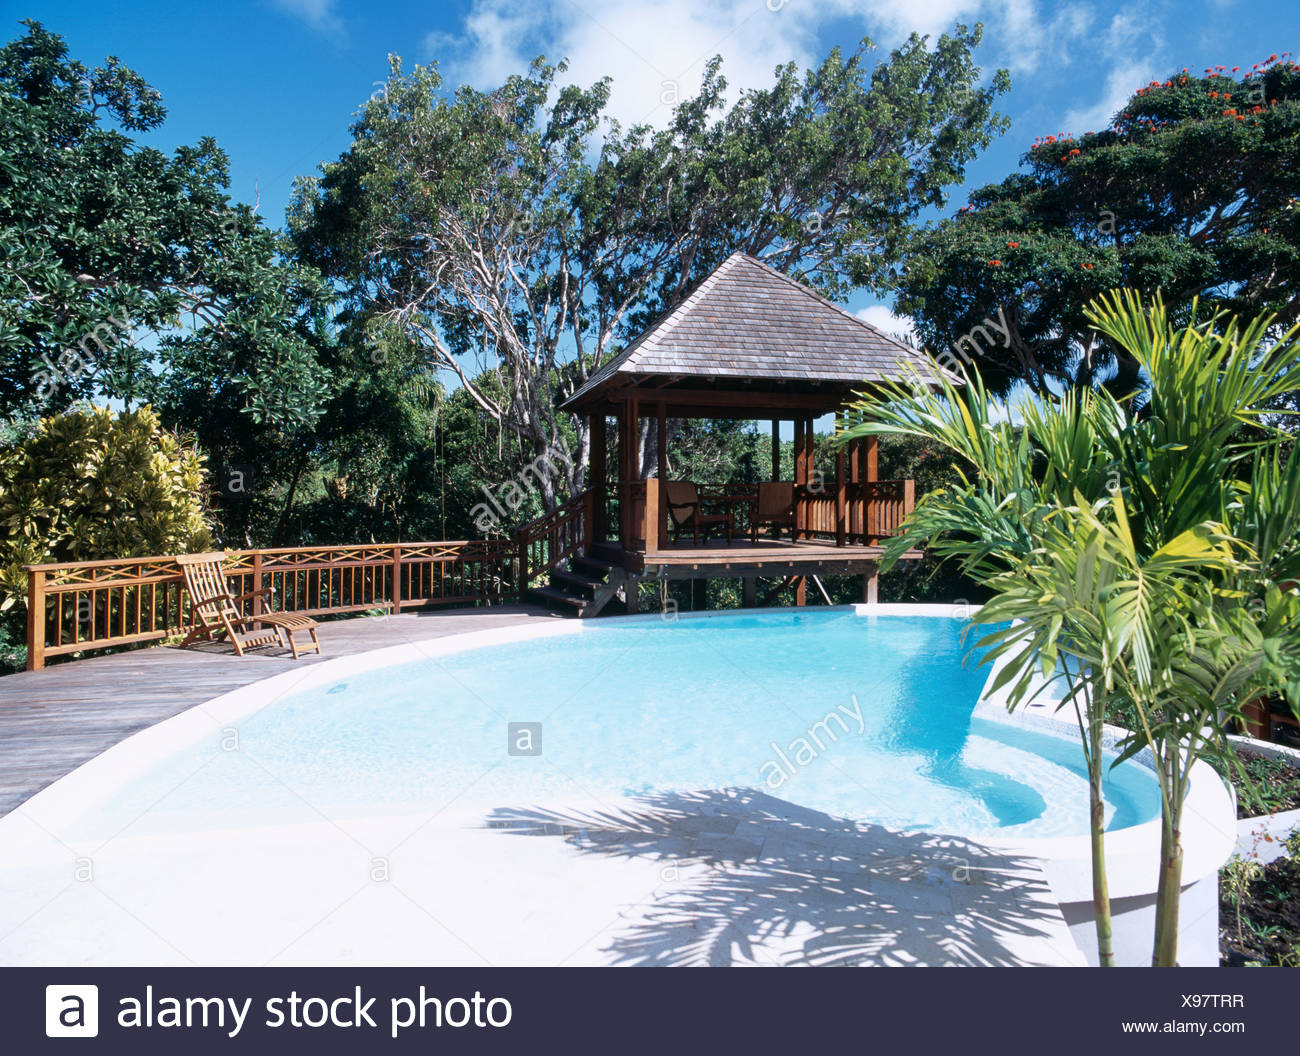 Wooden gazebo beside swimming pool surrounded by trees in ...